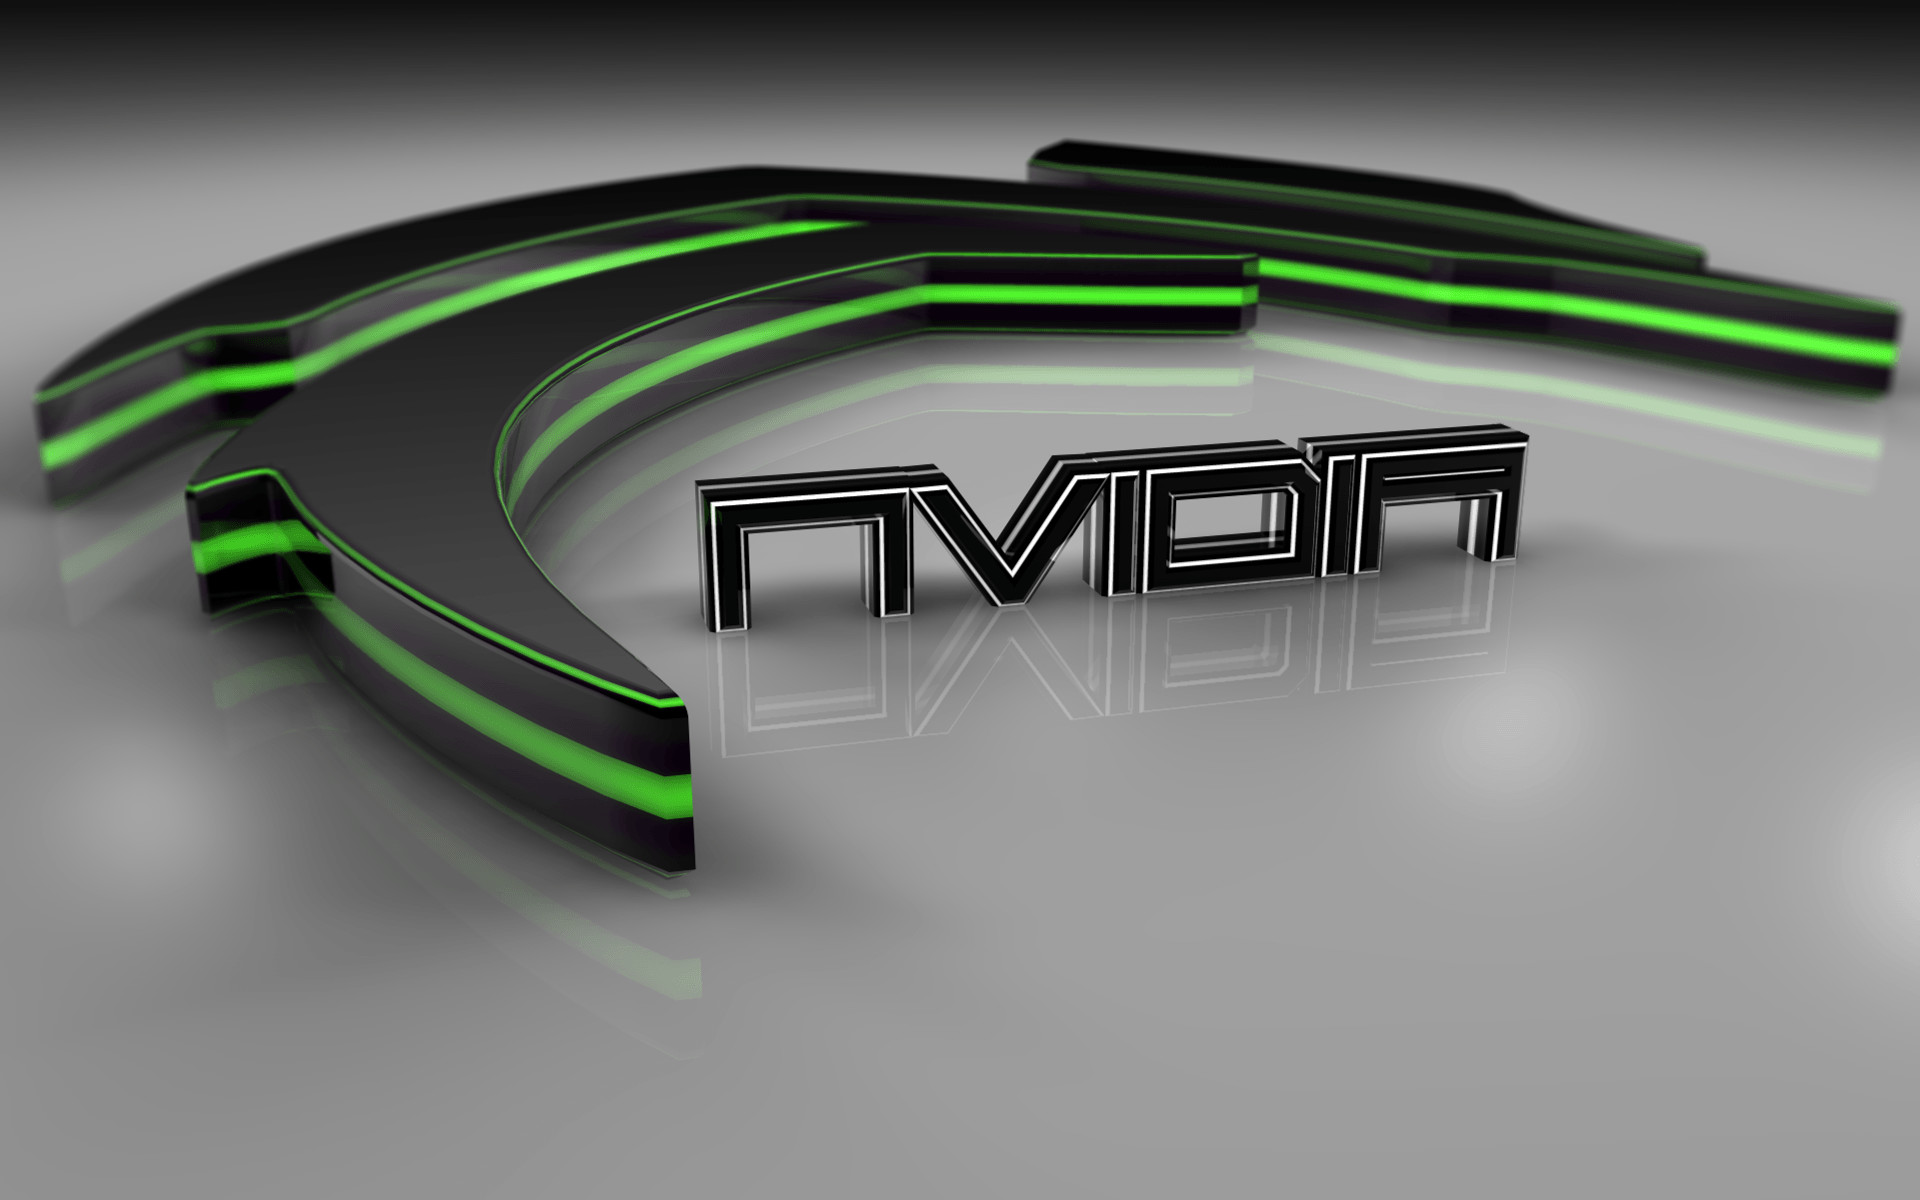 Nvidia Wallpaper Hd 1920×1080 Images & Pictures – Becuo